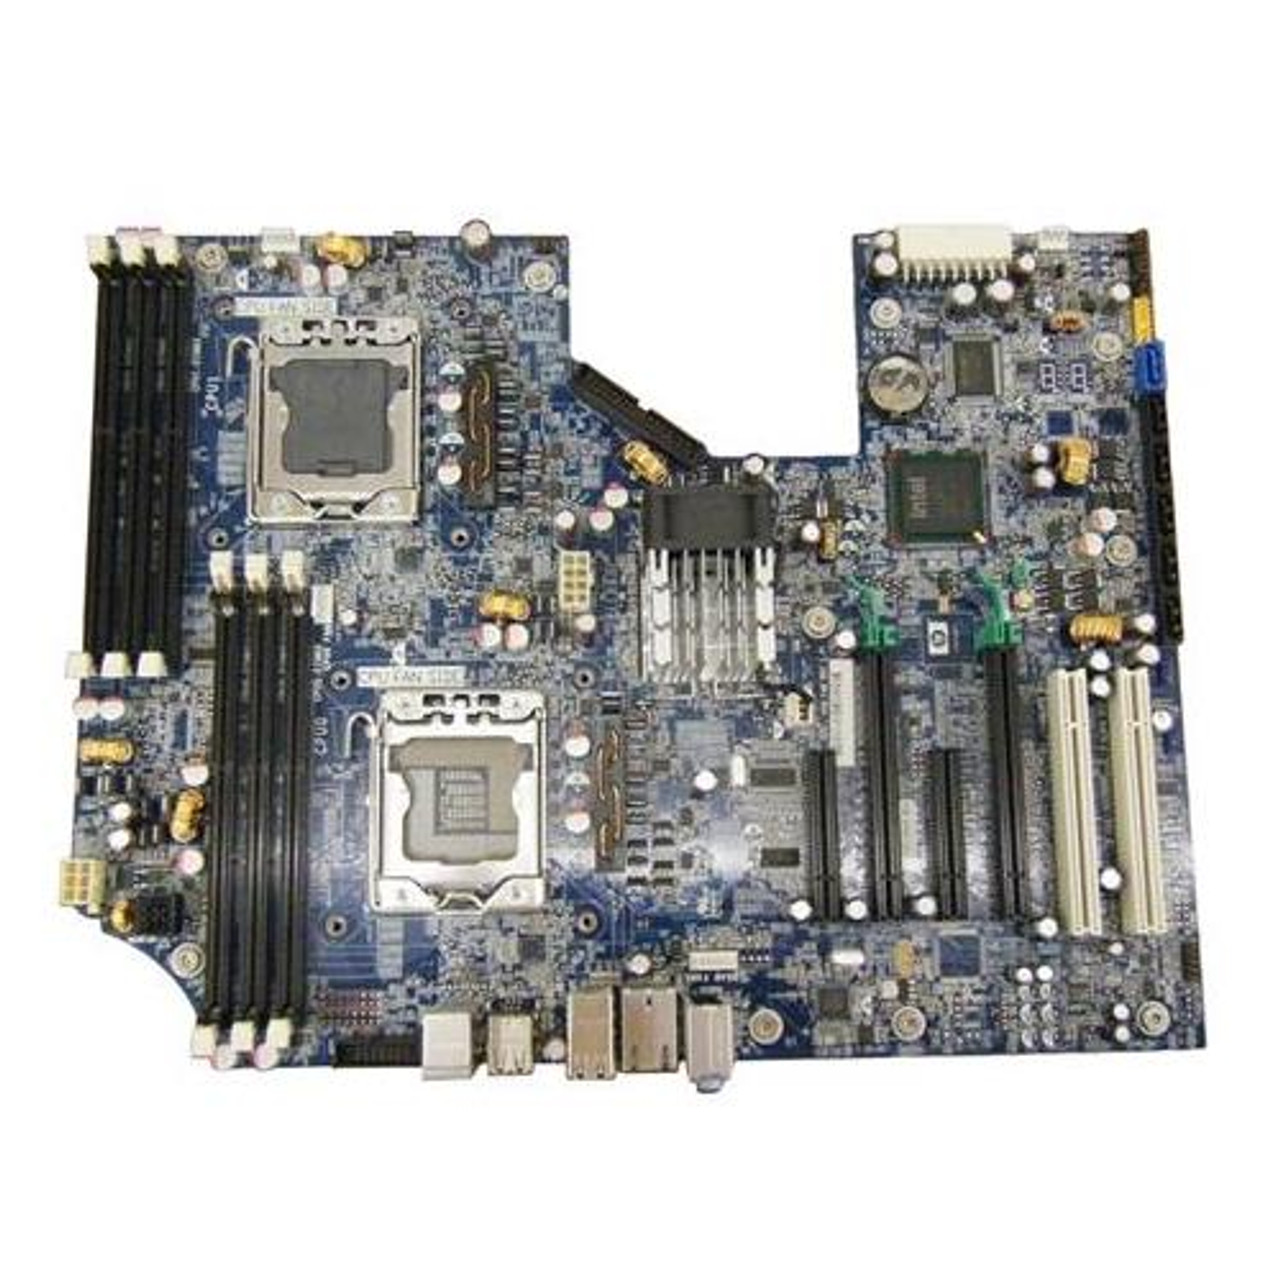 Part No: 619559-001 - HP System Board (MotherBoard) Dual CPU for Z620  Workstation